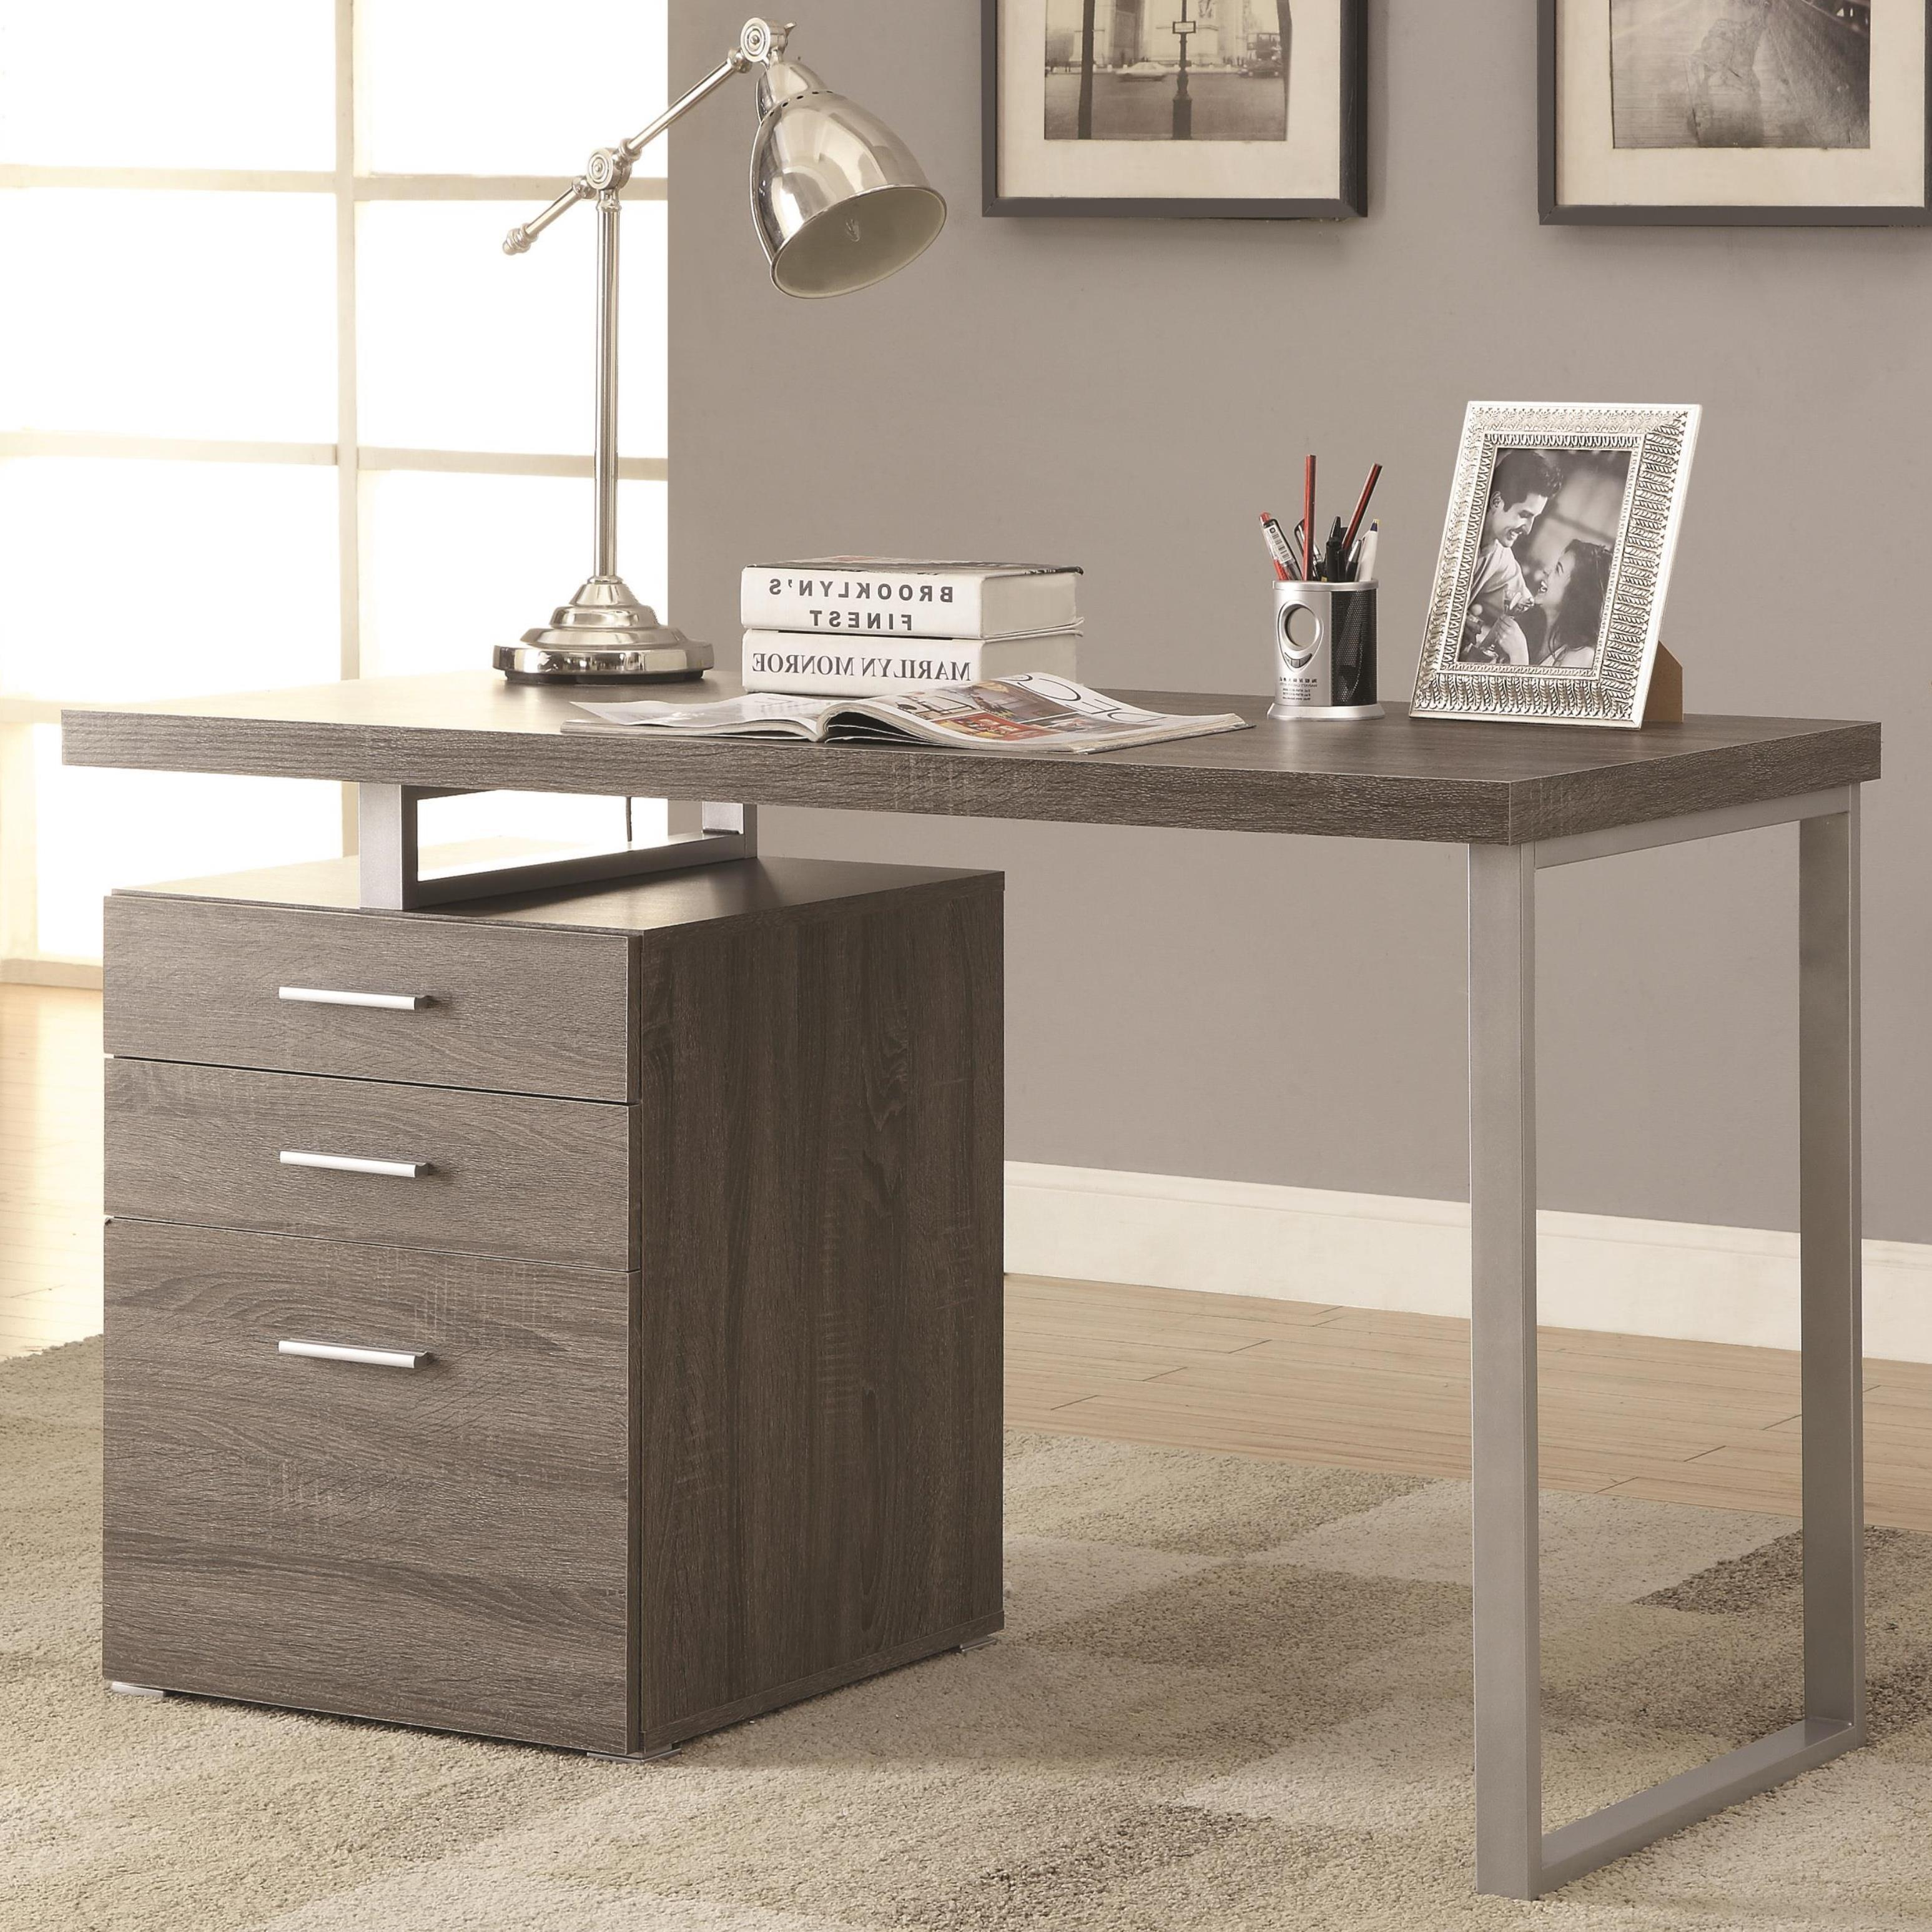 Charmant Shop Modern Design Home Office Weathered Grey Writing/ Computer Desk With  Drawers And File Cabinet   Free Shipping Today   Overstock.com   12222868